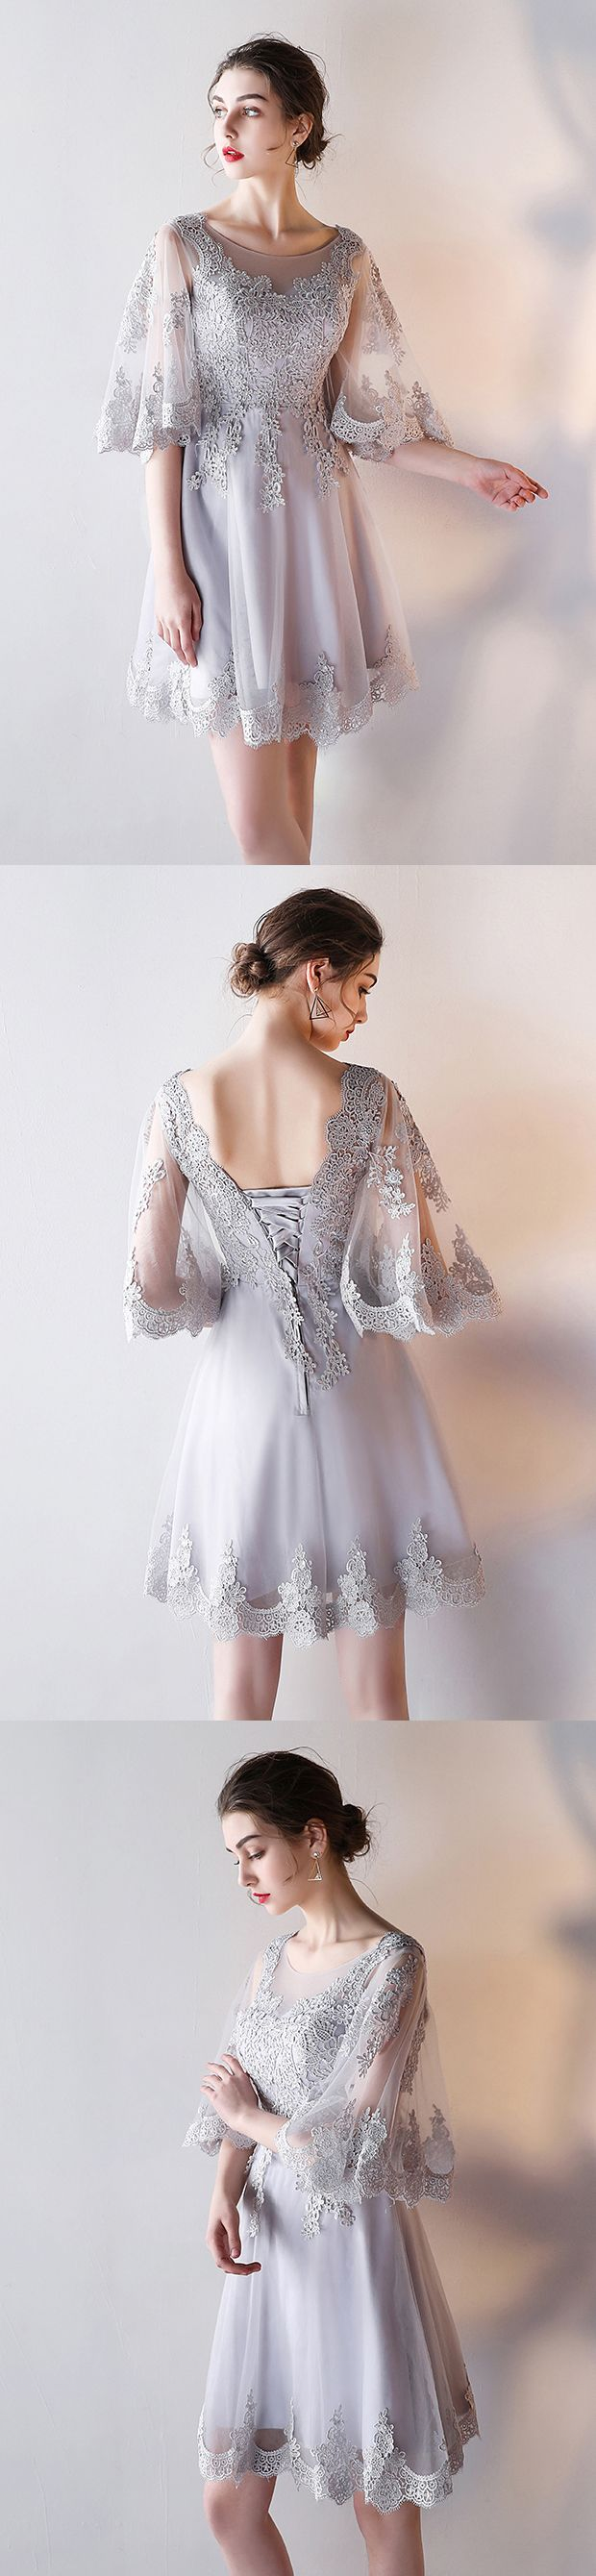 a-line homecoming dresses,fashion homecoming dresses,chiffon homecoming dresses,half sleeves homecoming dresses,lace up homecoming dresses,2017 homecoming dresses,appliques homecoming dresses,homecoming dresses for teens